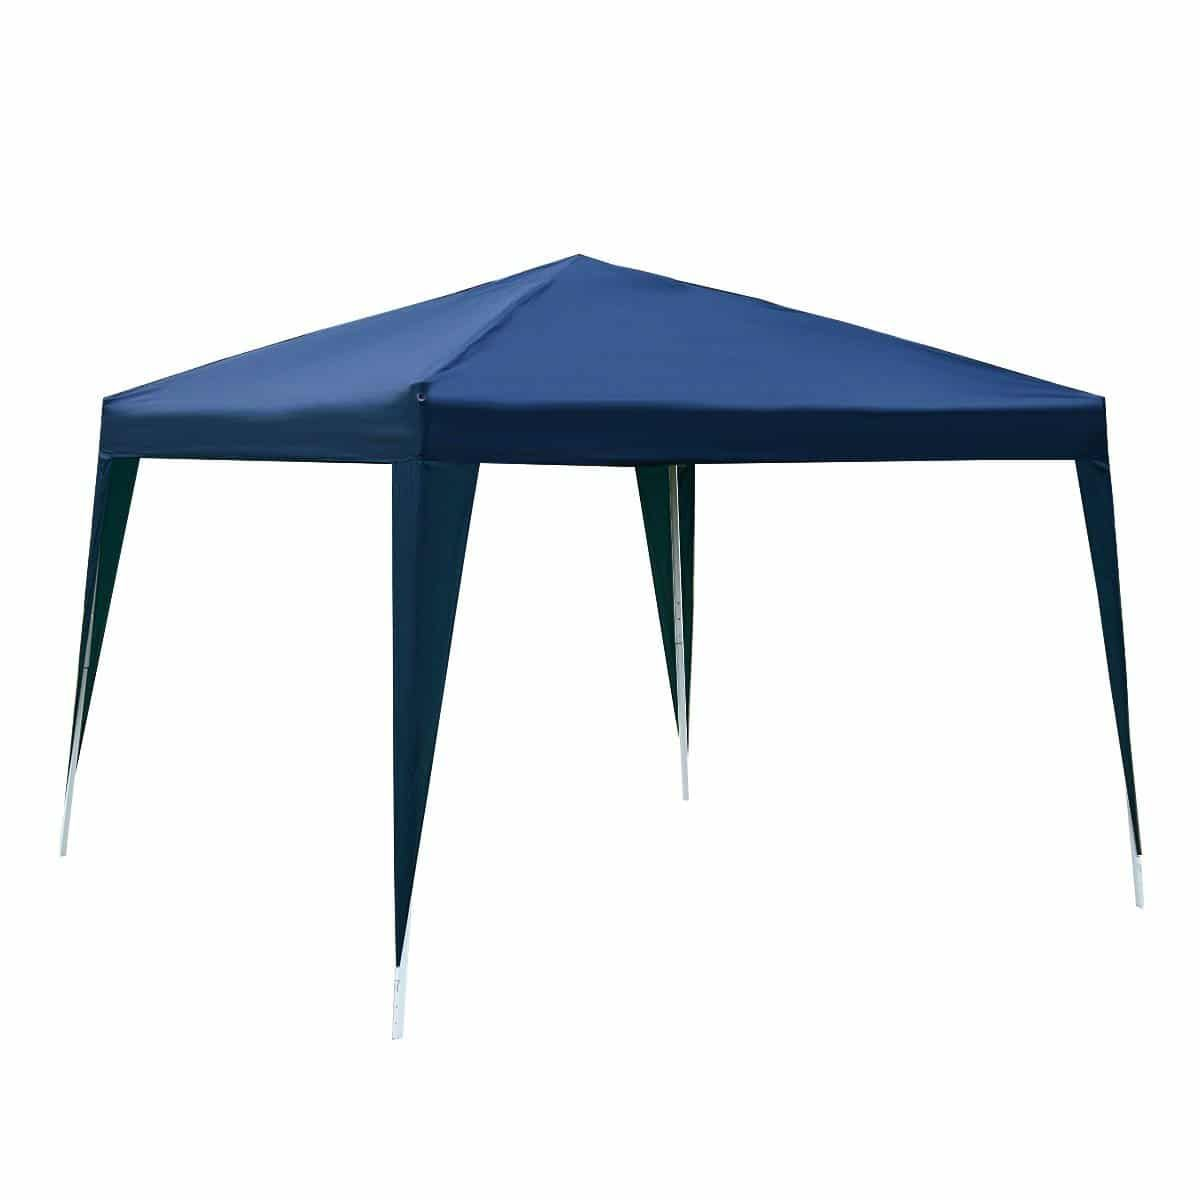 Top 10 Best Pop Up Canopy In 2020 Shelter You From The Sun Rain Hqreview Canopy Outdoor Gazebo Canopy